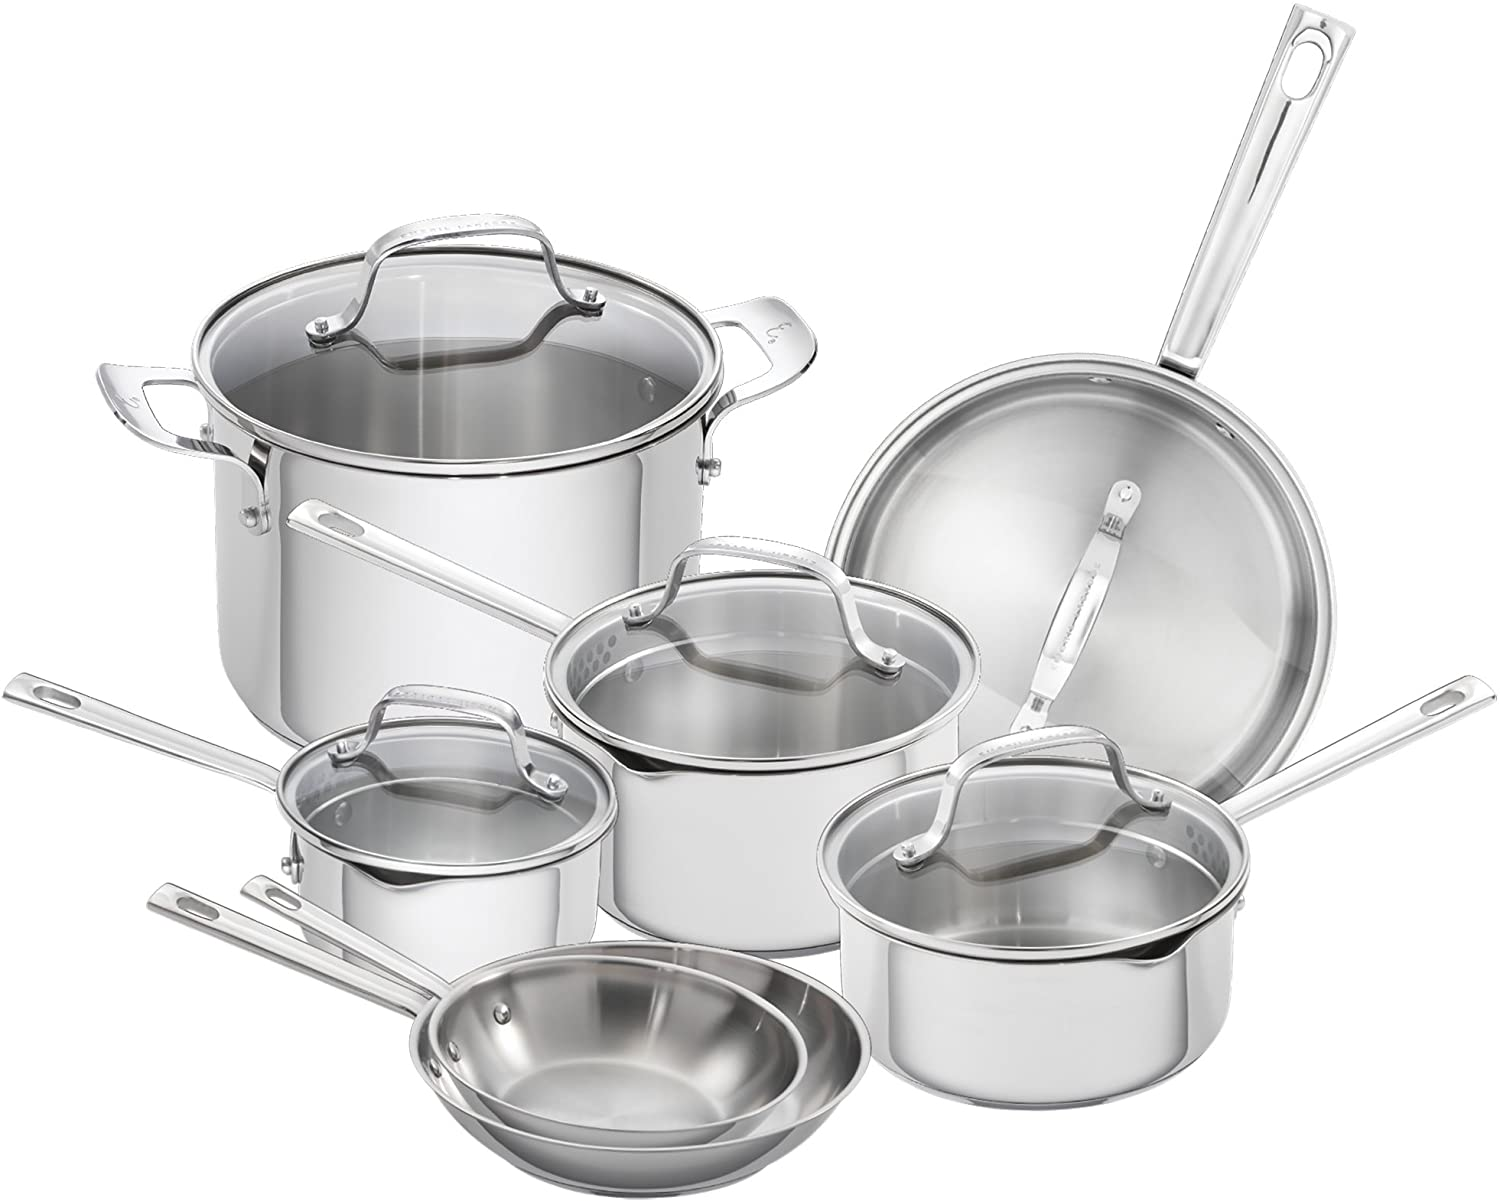 Emeril Lagasse Stainless Steel Cookware Set with Copper Core